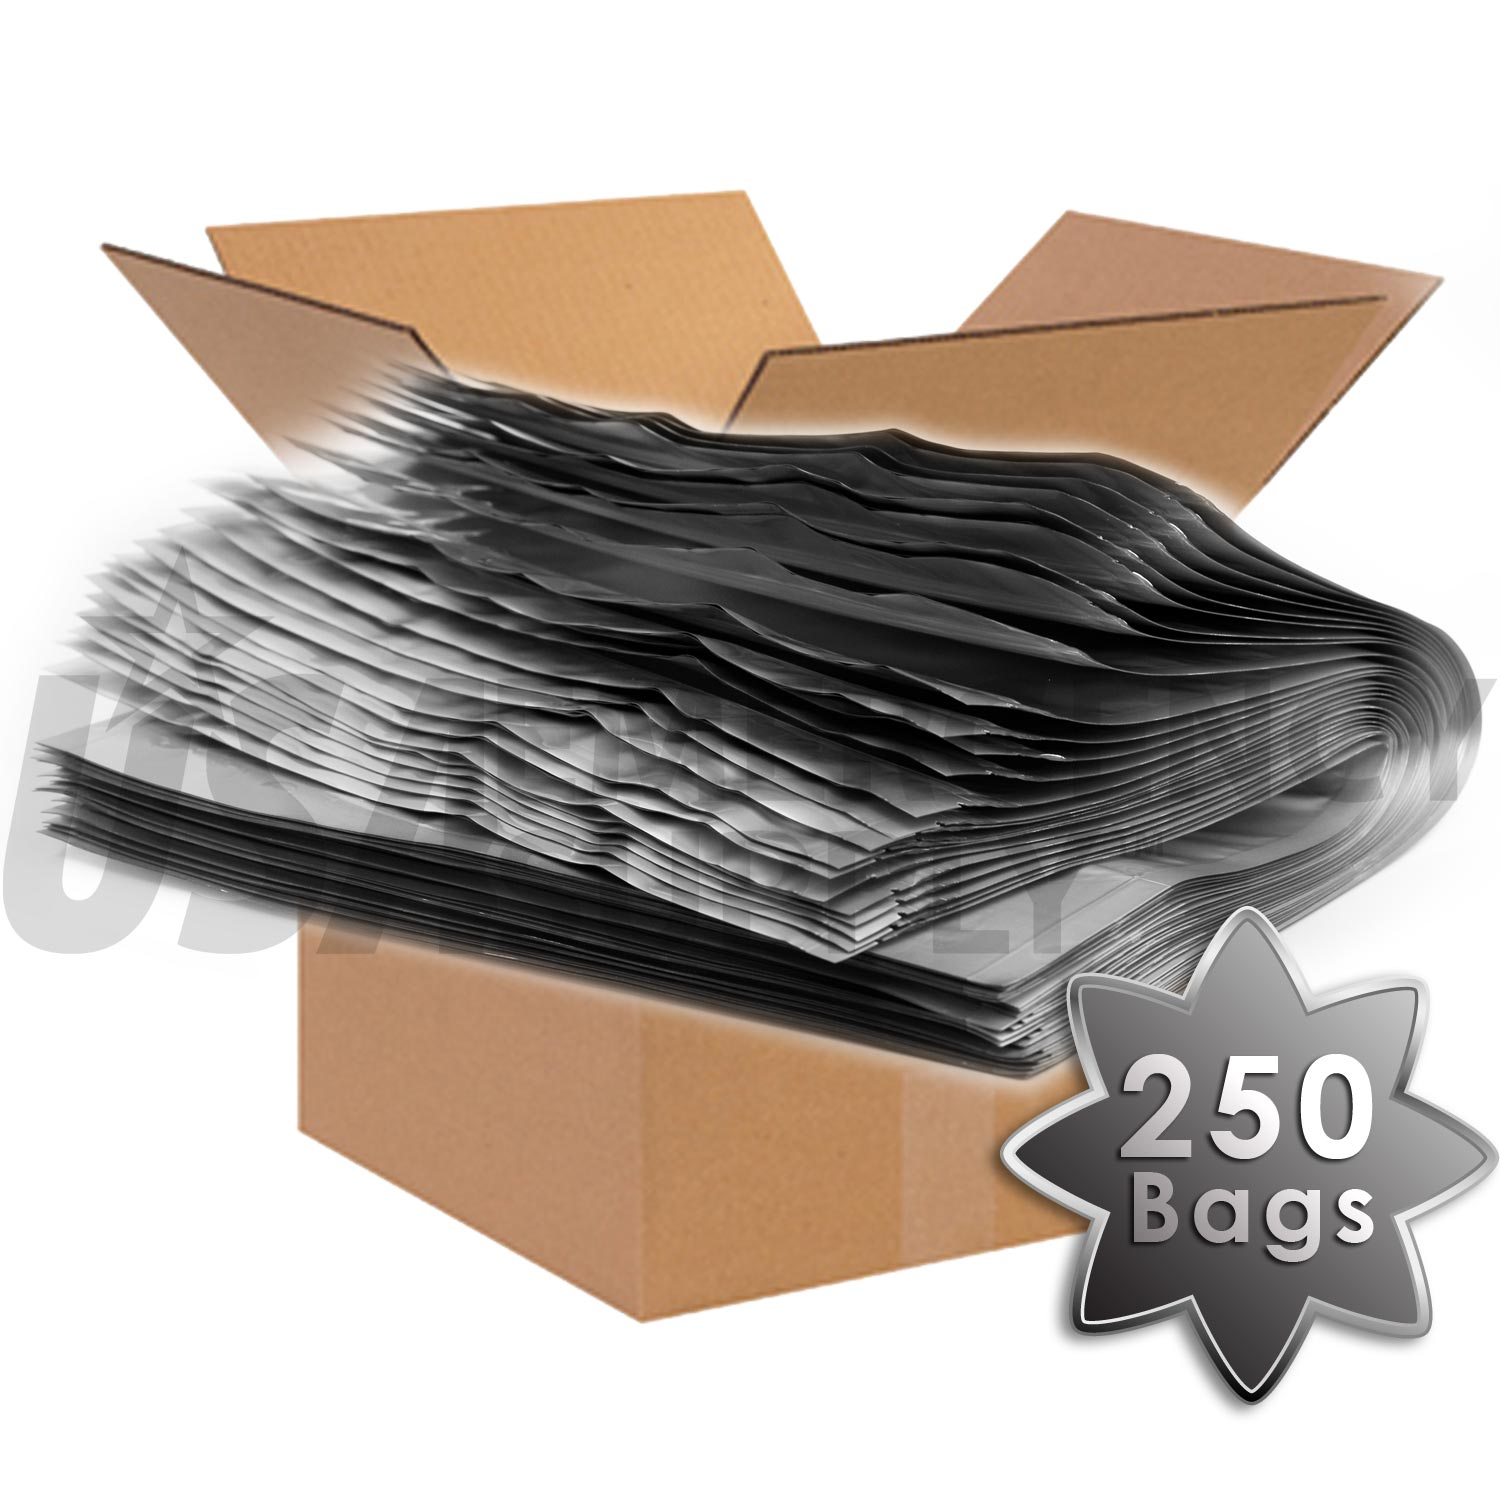 1 5 Gallon Mylar Bags With Ziplock 4 Mils 12in X 16in 6in Case Of 250